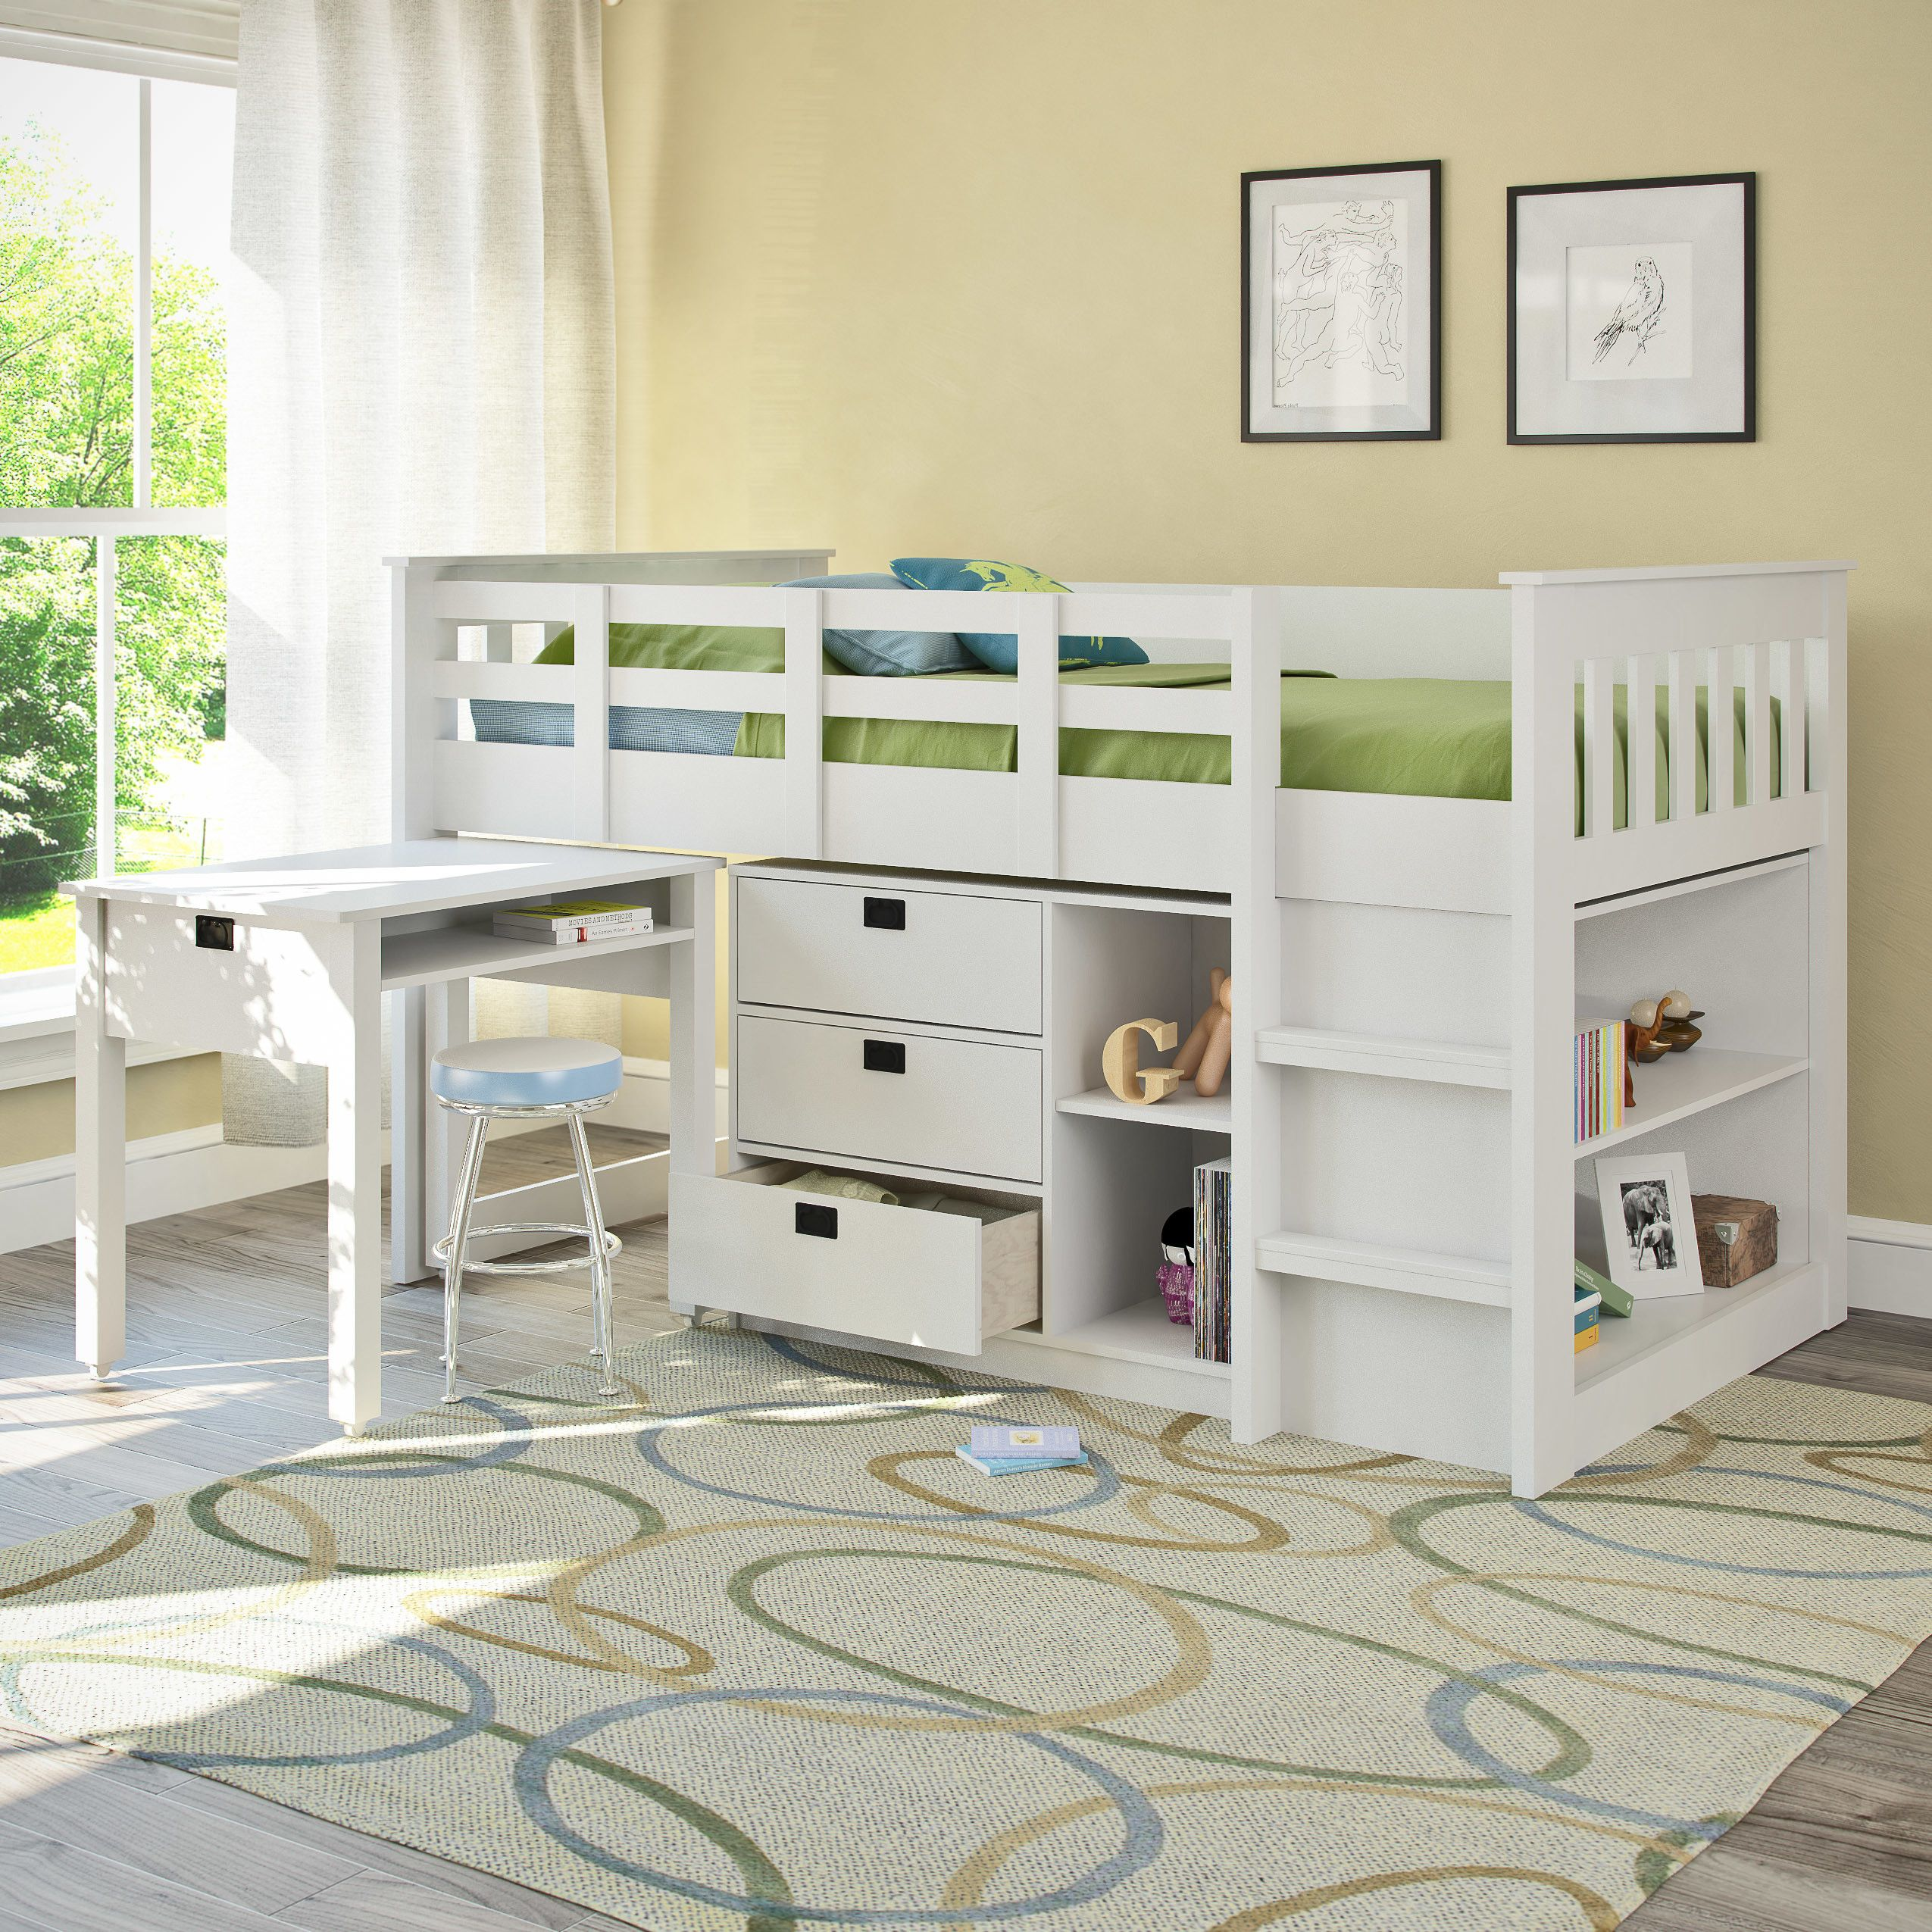 Shop Wayfair For Bunk & Loft Beds To Match Every